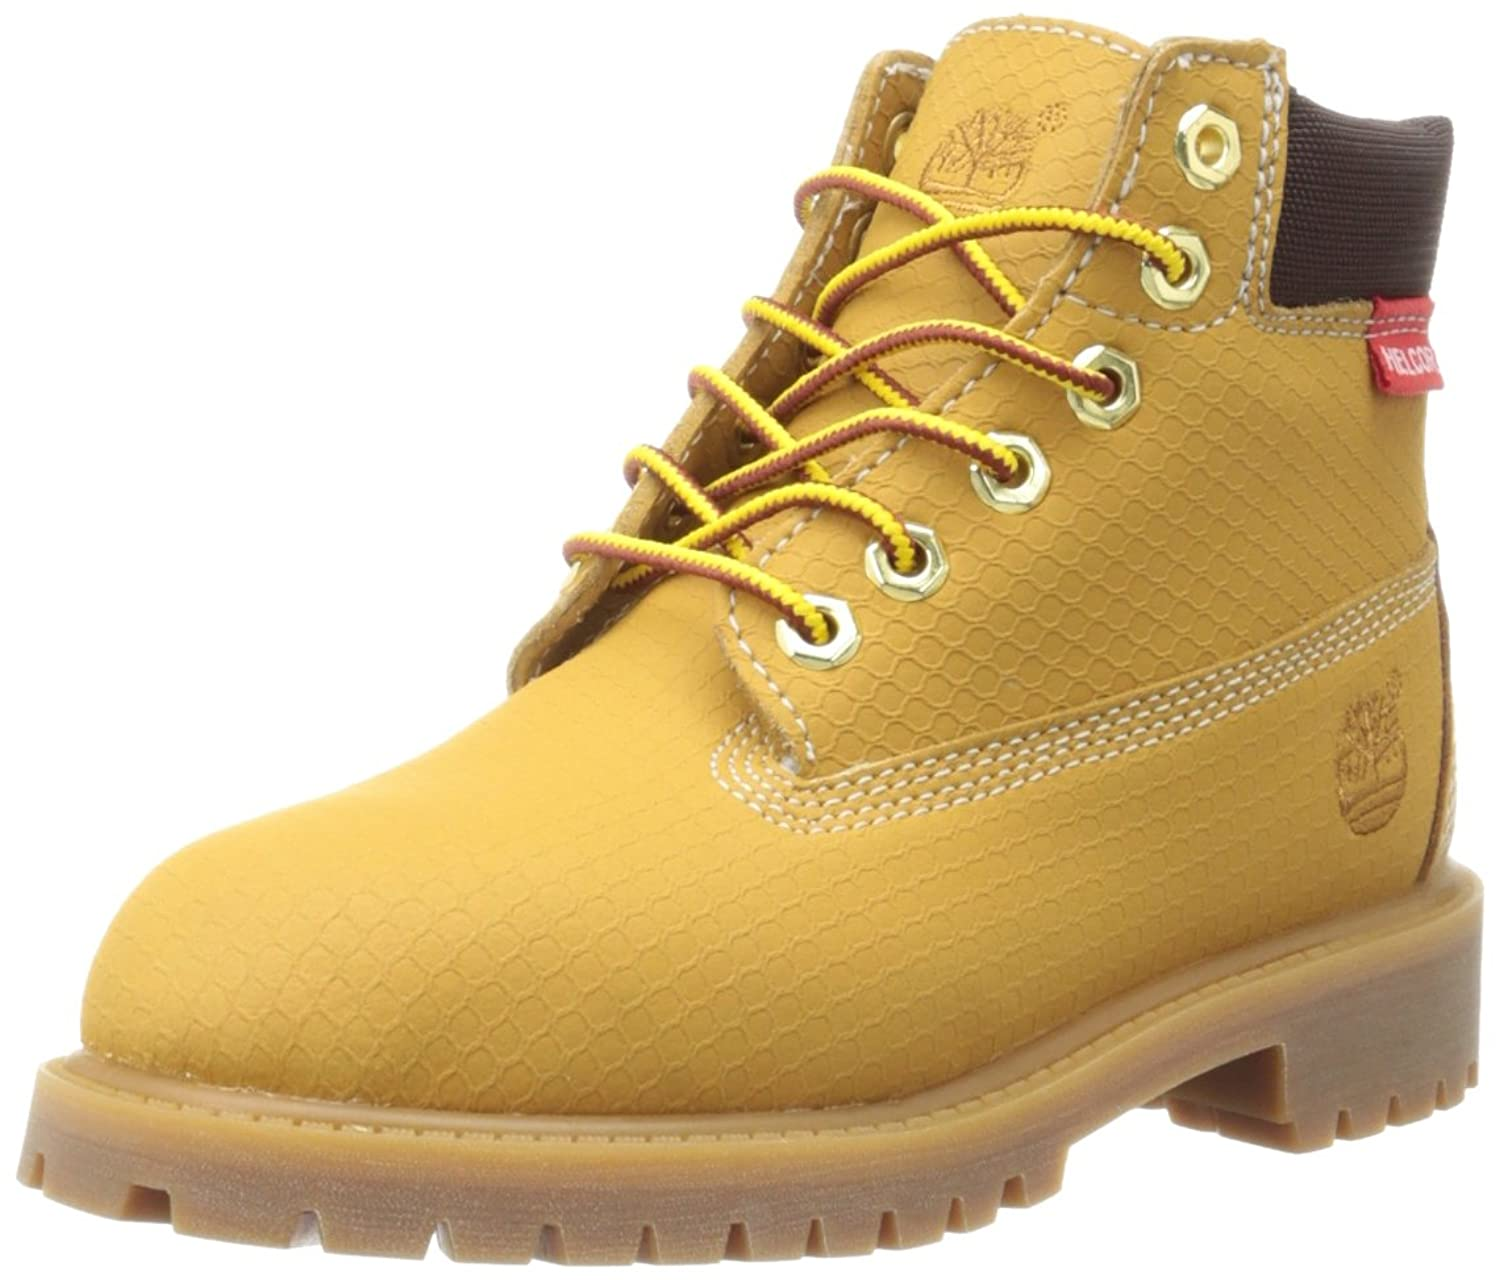 Timberland Men's Premium Scuff Proof Waterproof Leather Boots 6 inch: Buy Online at Low Prices in India Amazon.in